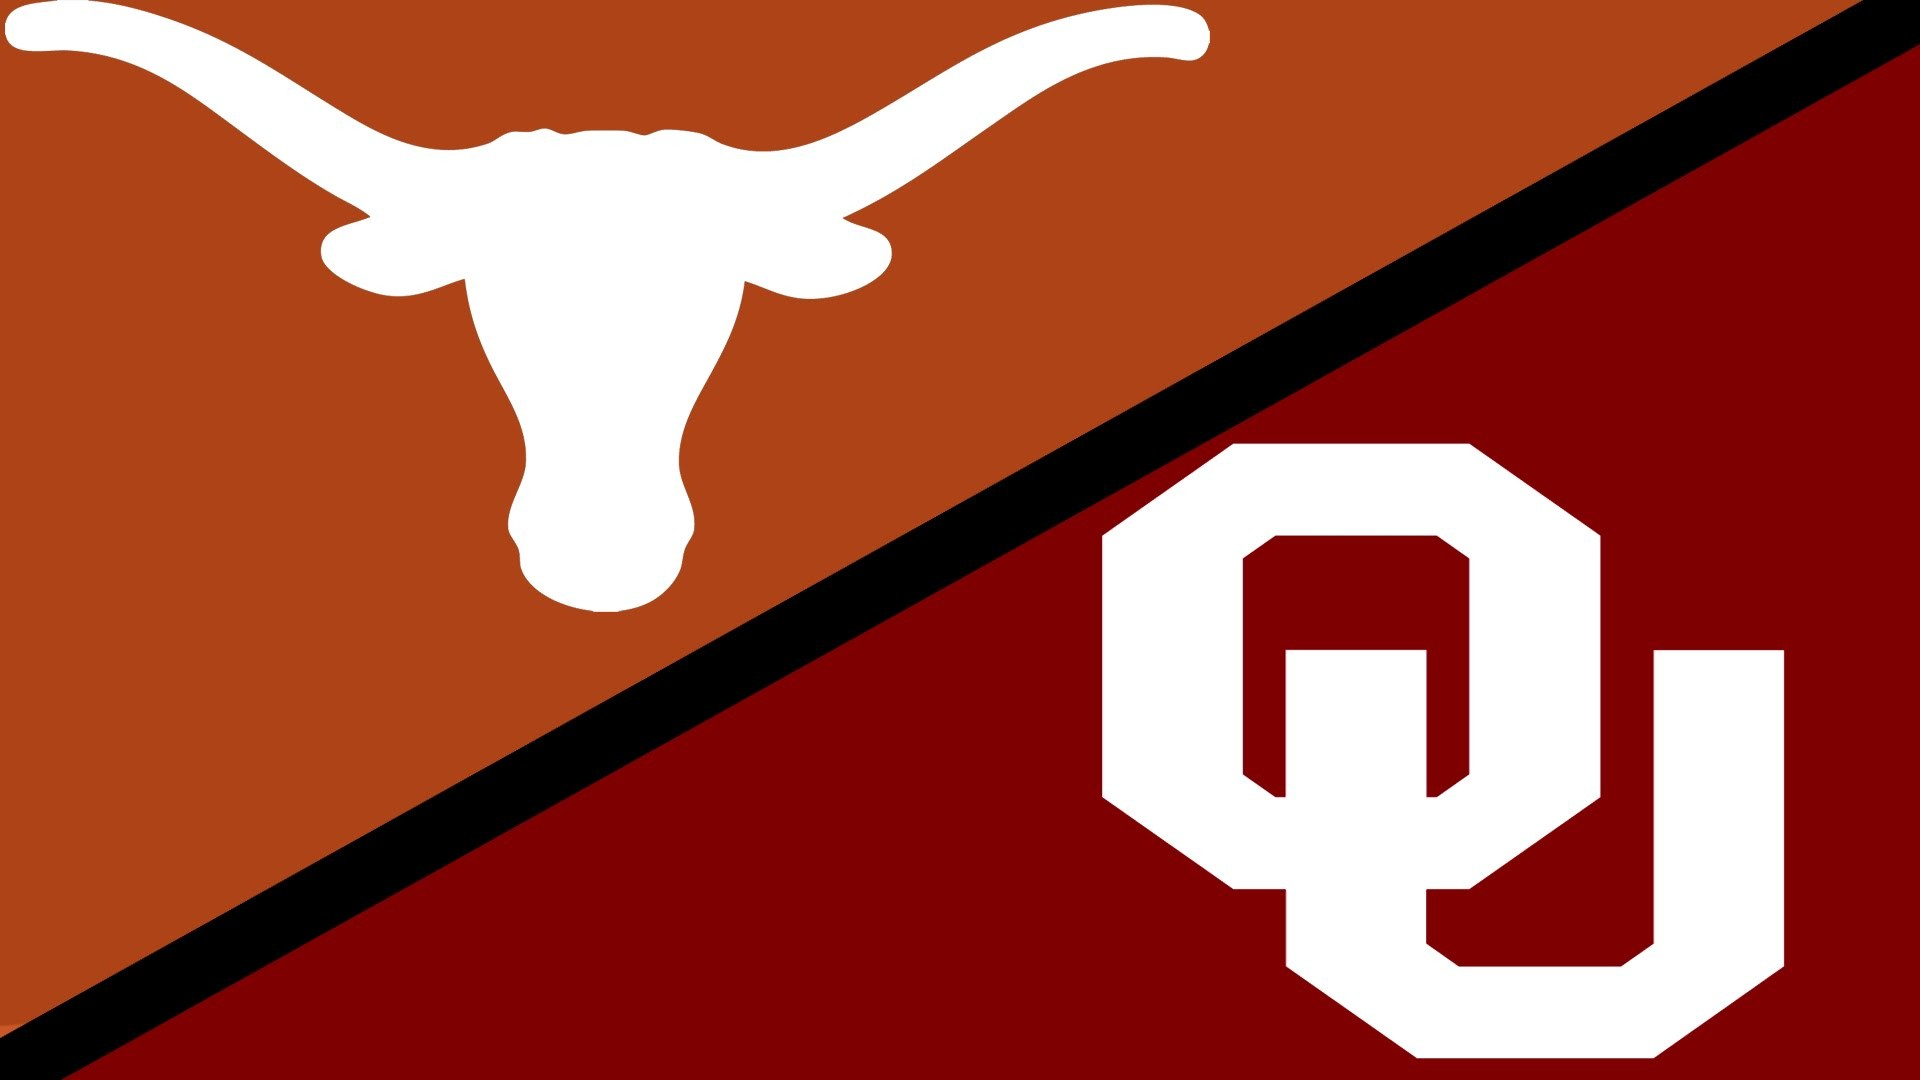 Res: 1920x1080, Texas Longhorns Football HD Pictures.